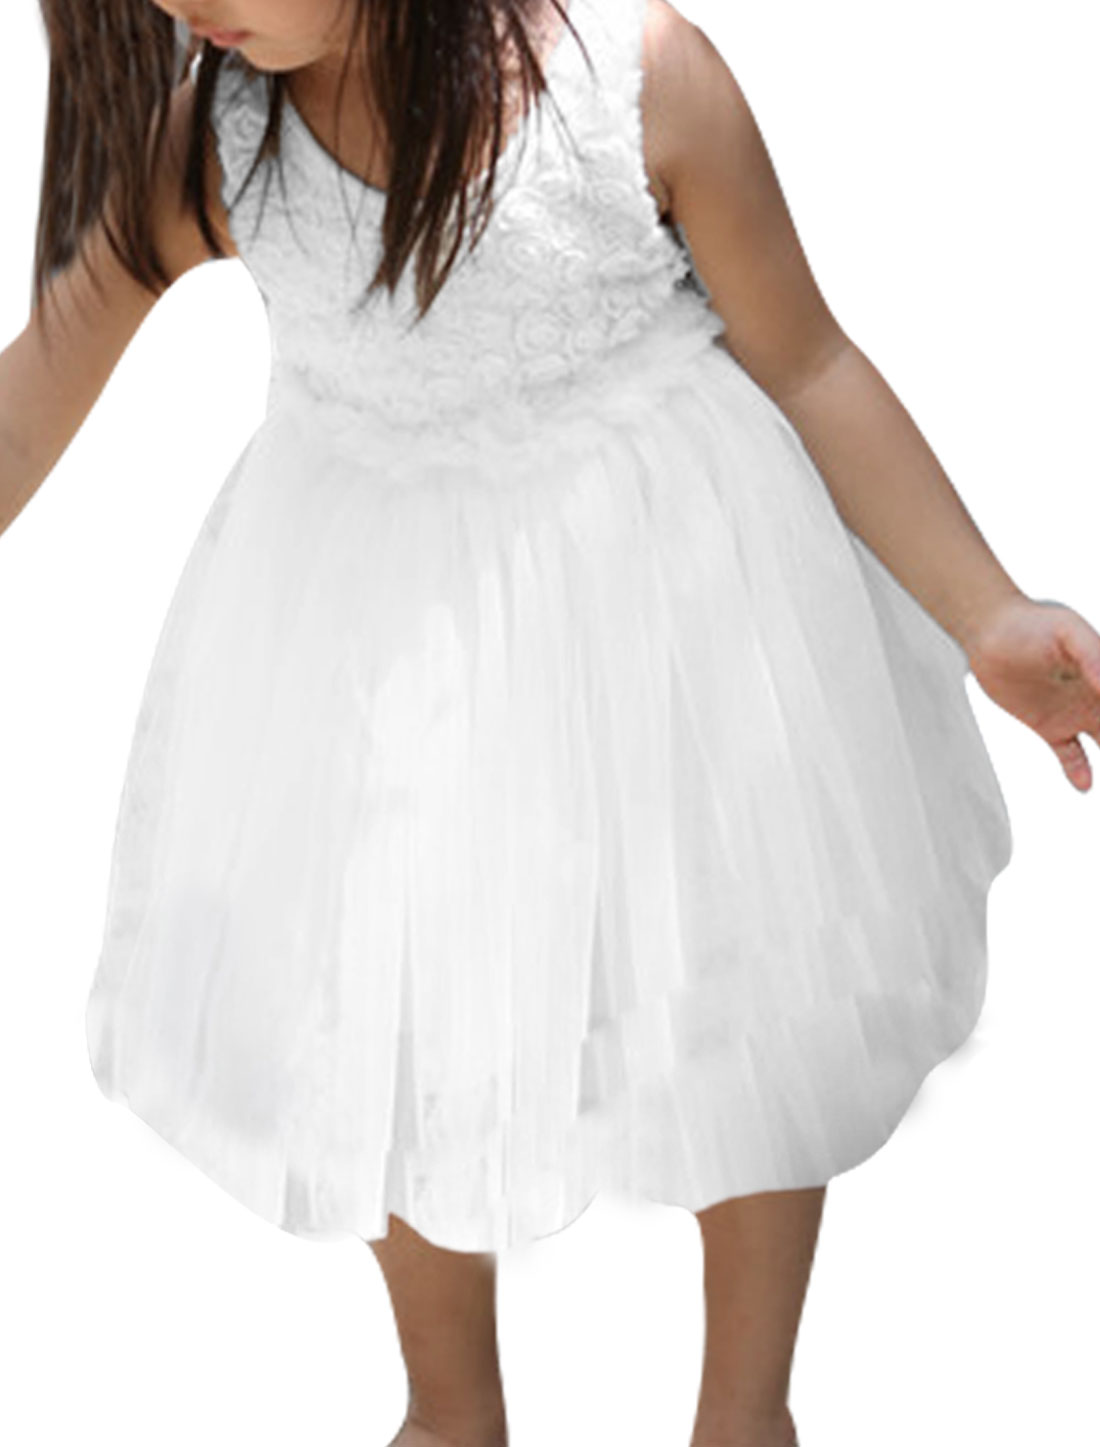 Girl Sleeveless Floral Design Mesh Panel Pleated Dress White 12 Month